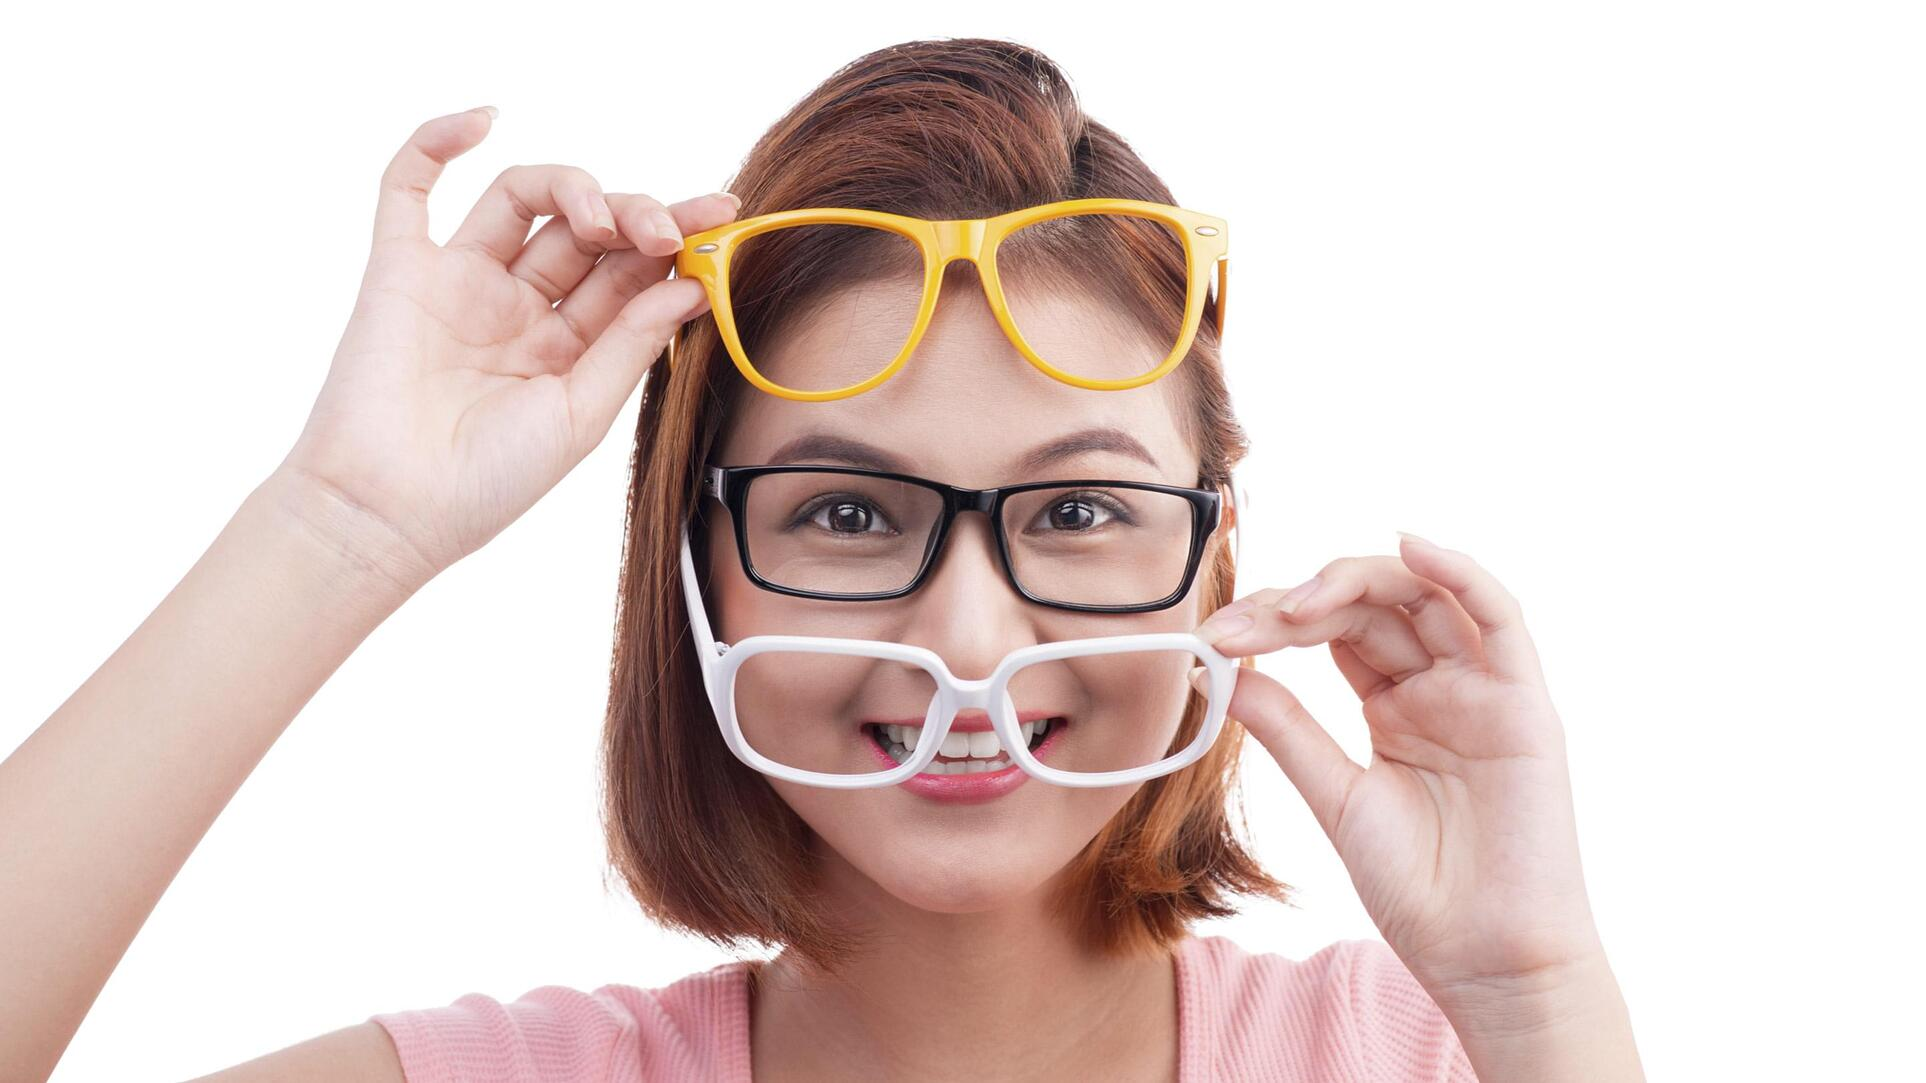 How should glasses sit on my nose?